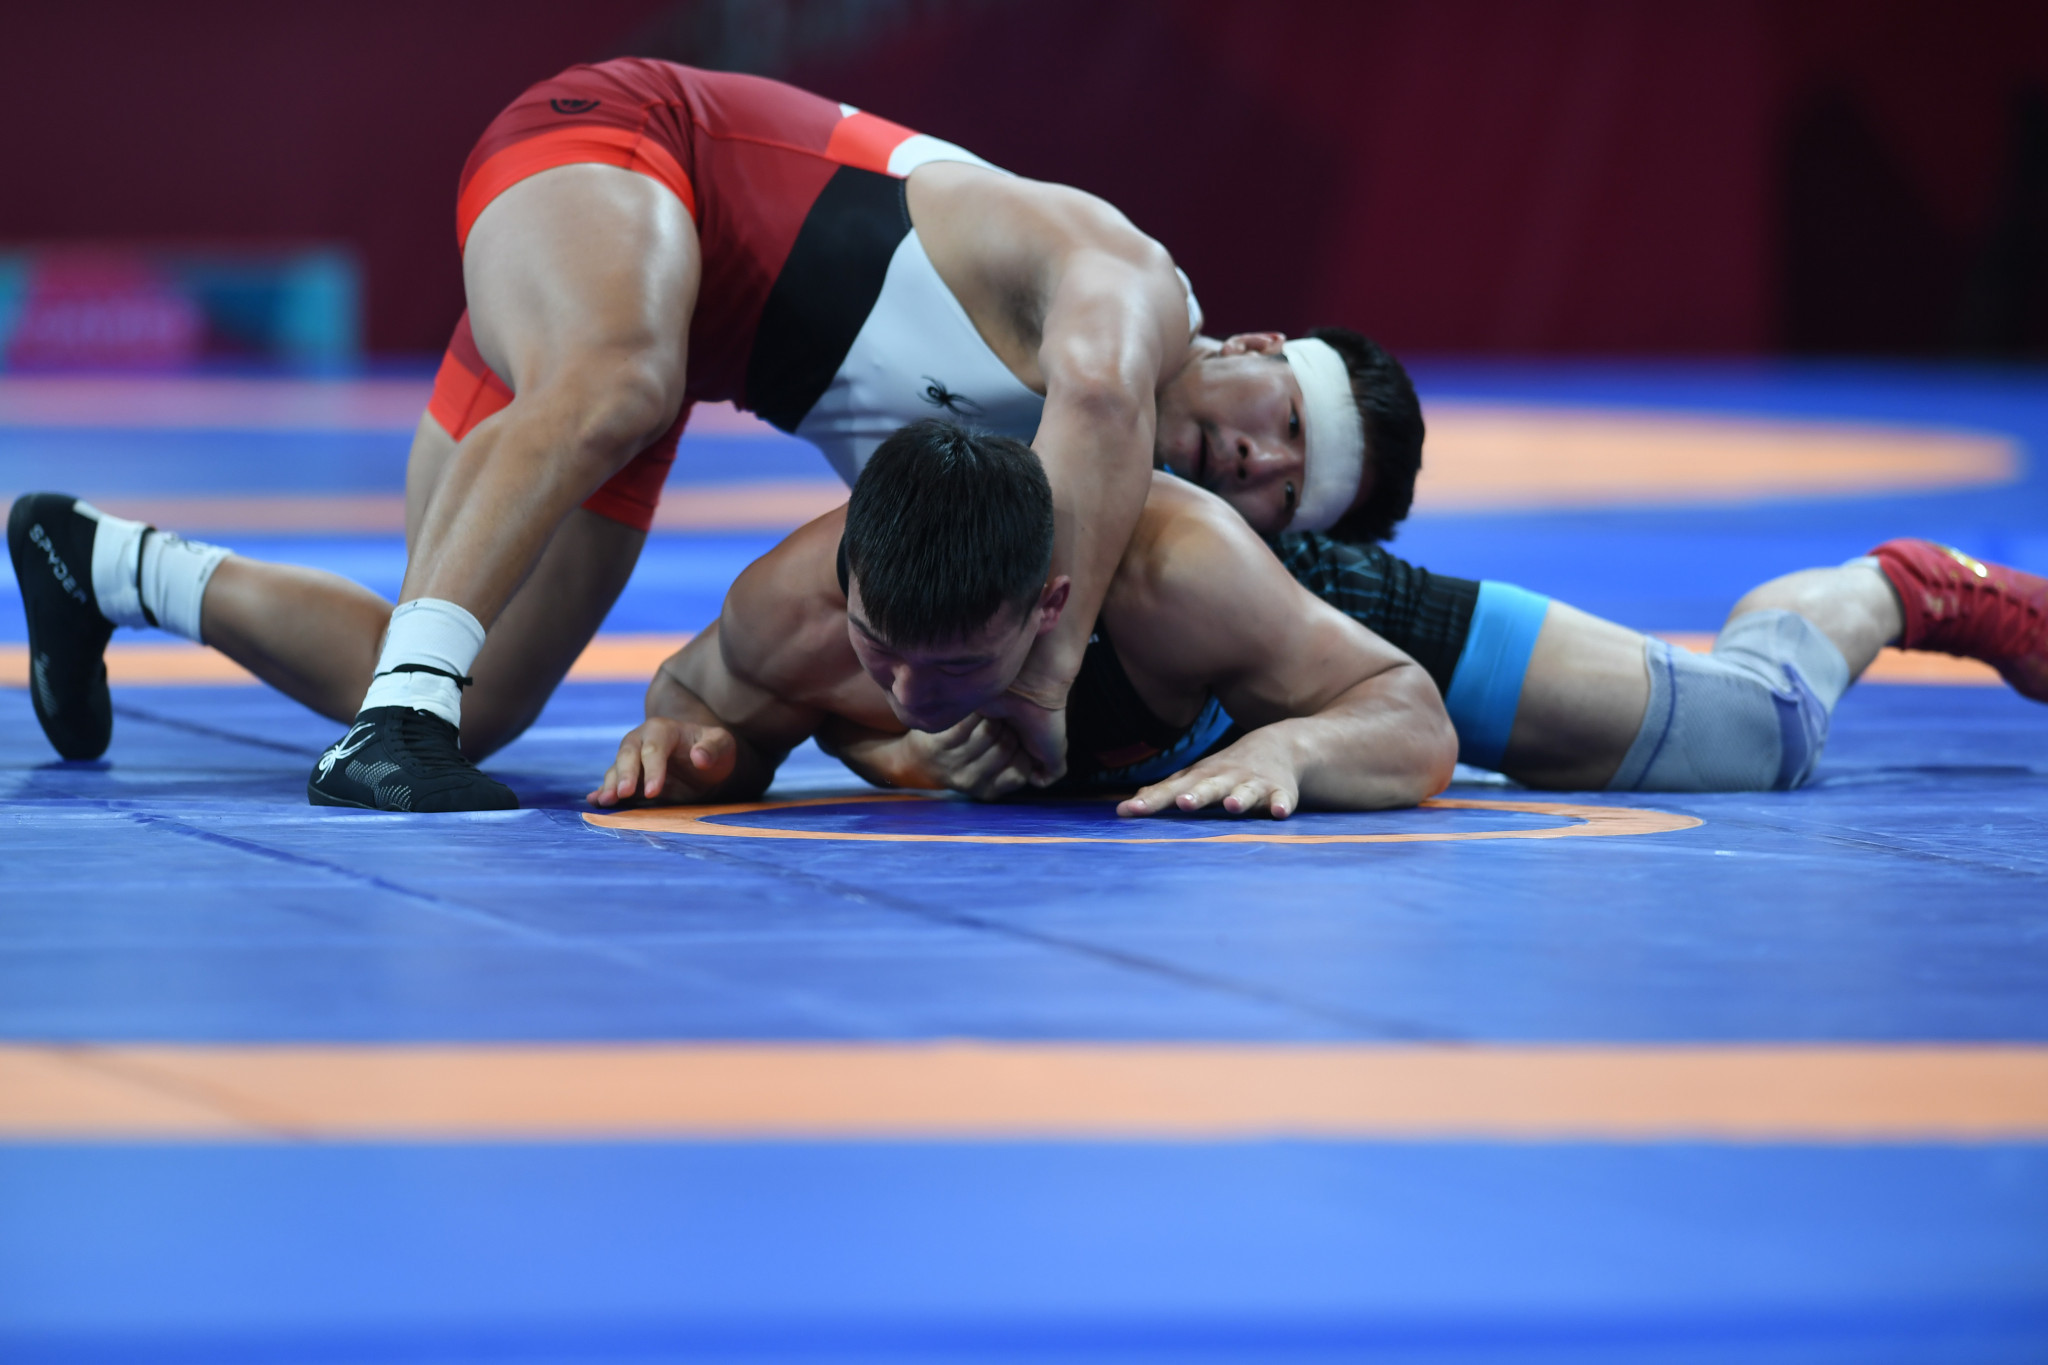 Officials from North and South Korea have reportedly met to discuss forming a joint wrestling team for the Tokyo 2020 Olympic Games ©Getty Images